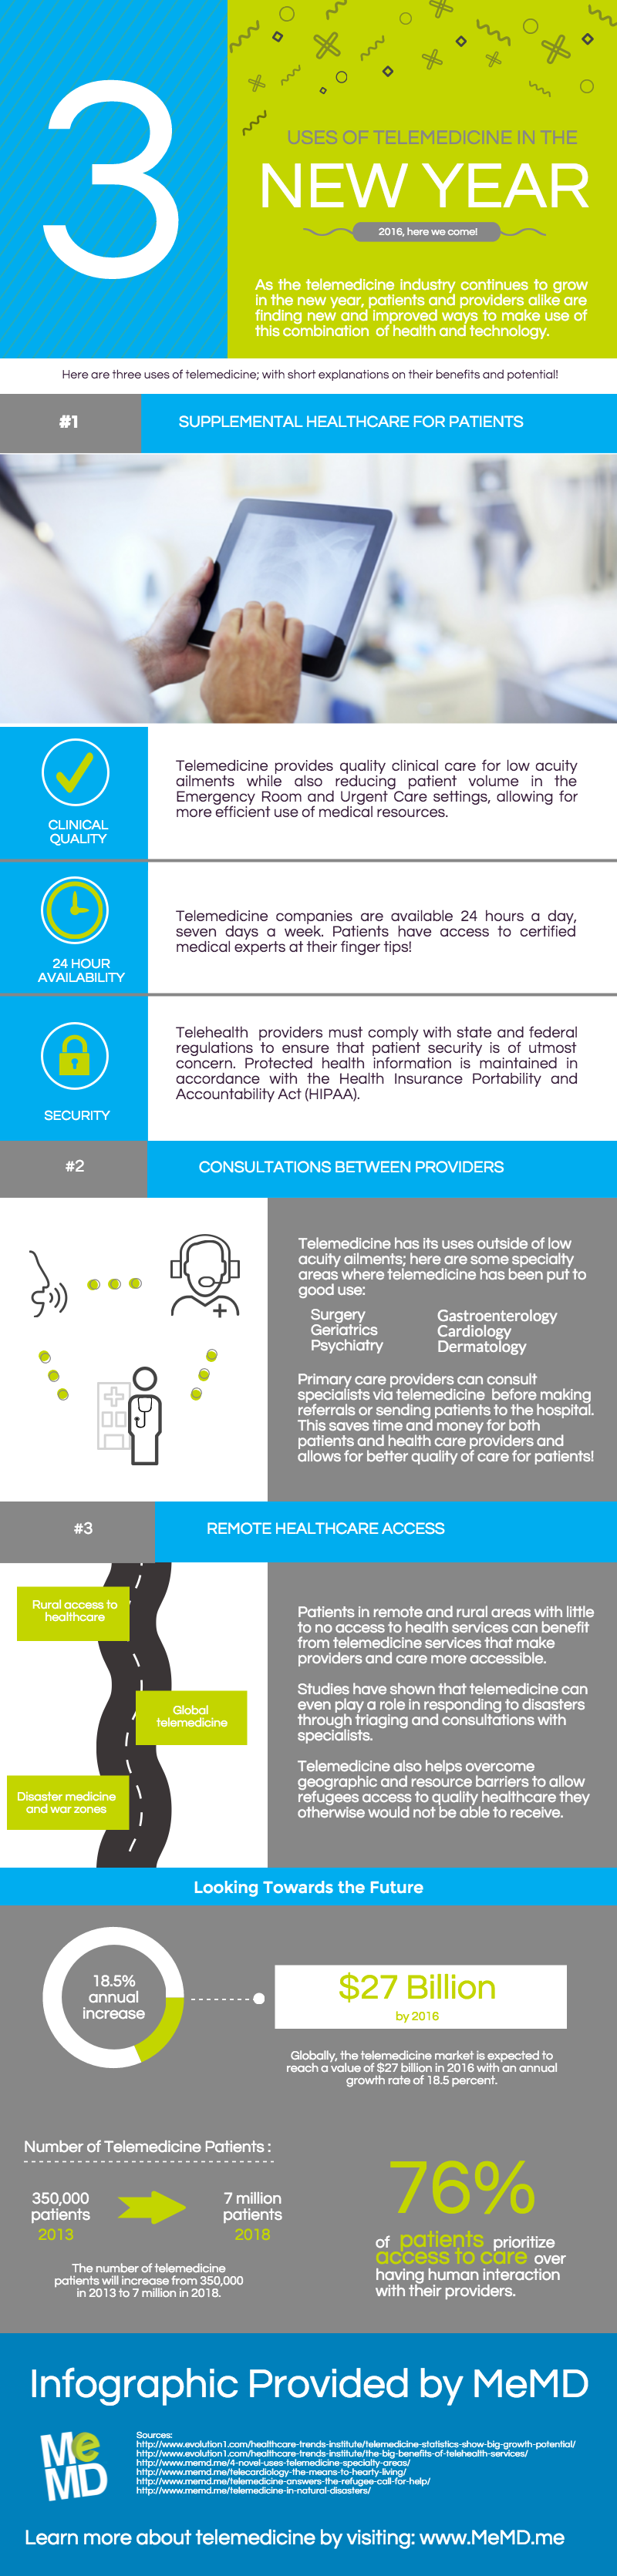 Blog-infographic-Telemedicine-in-the-New-Year